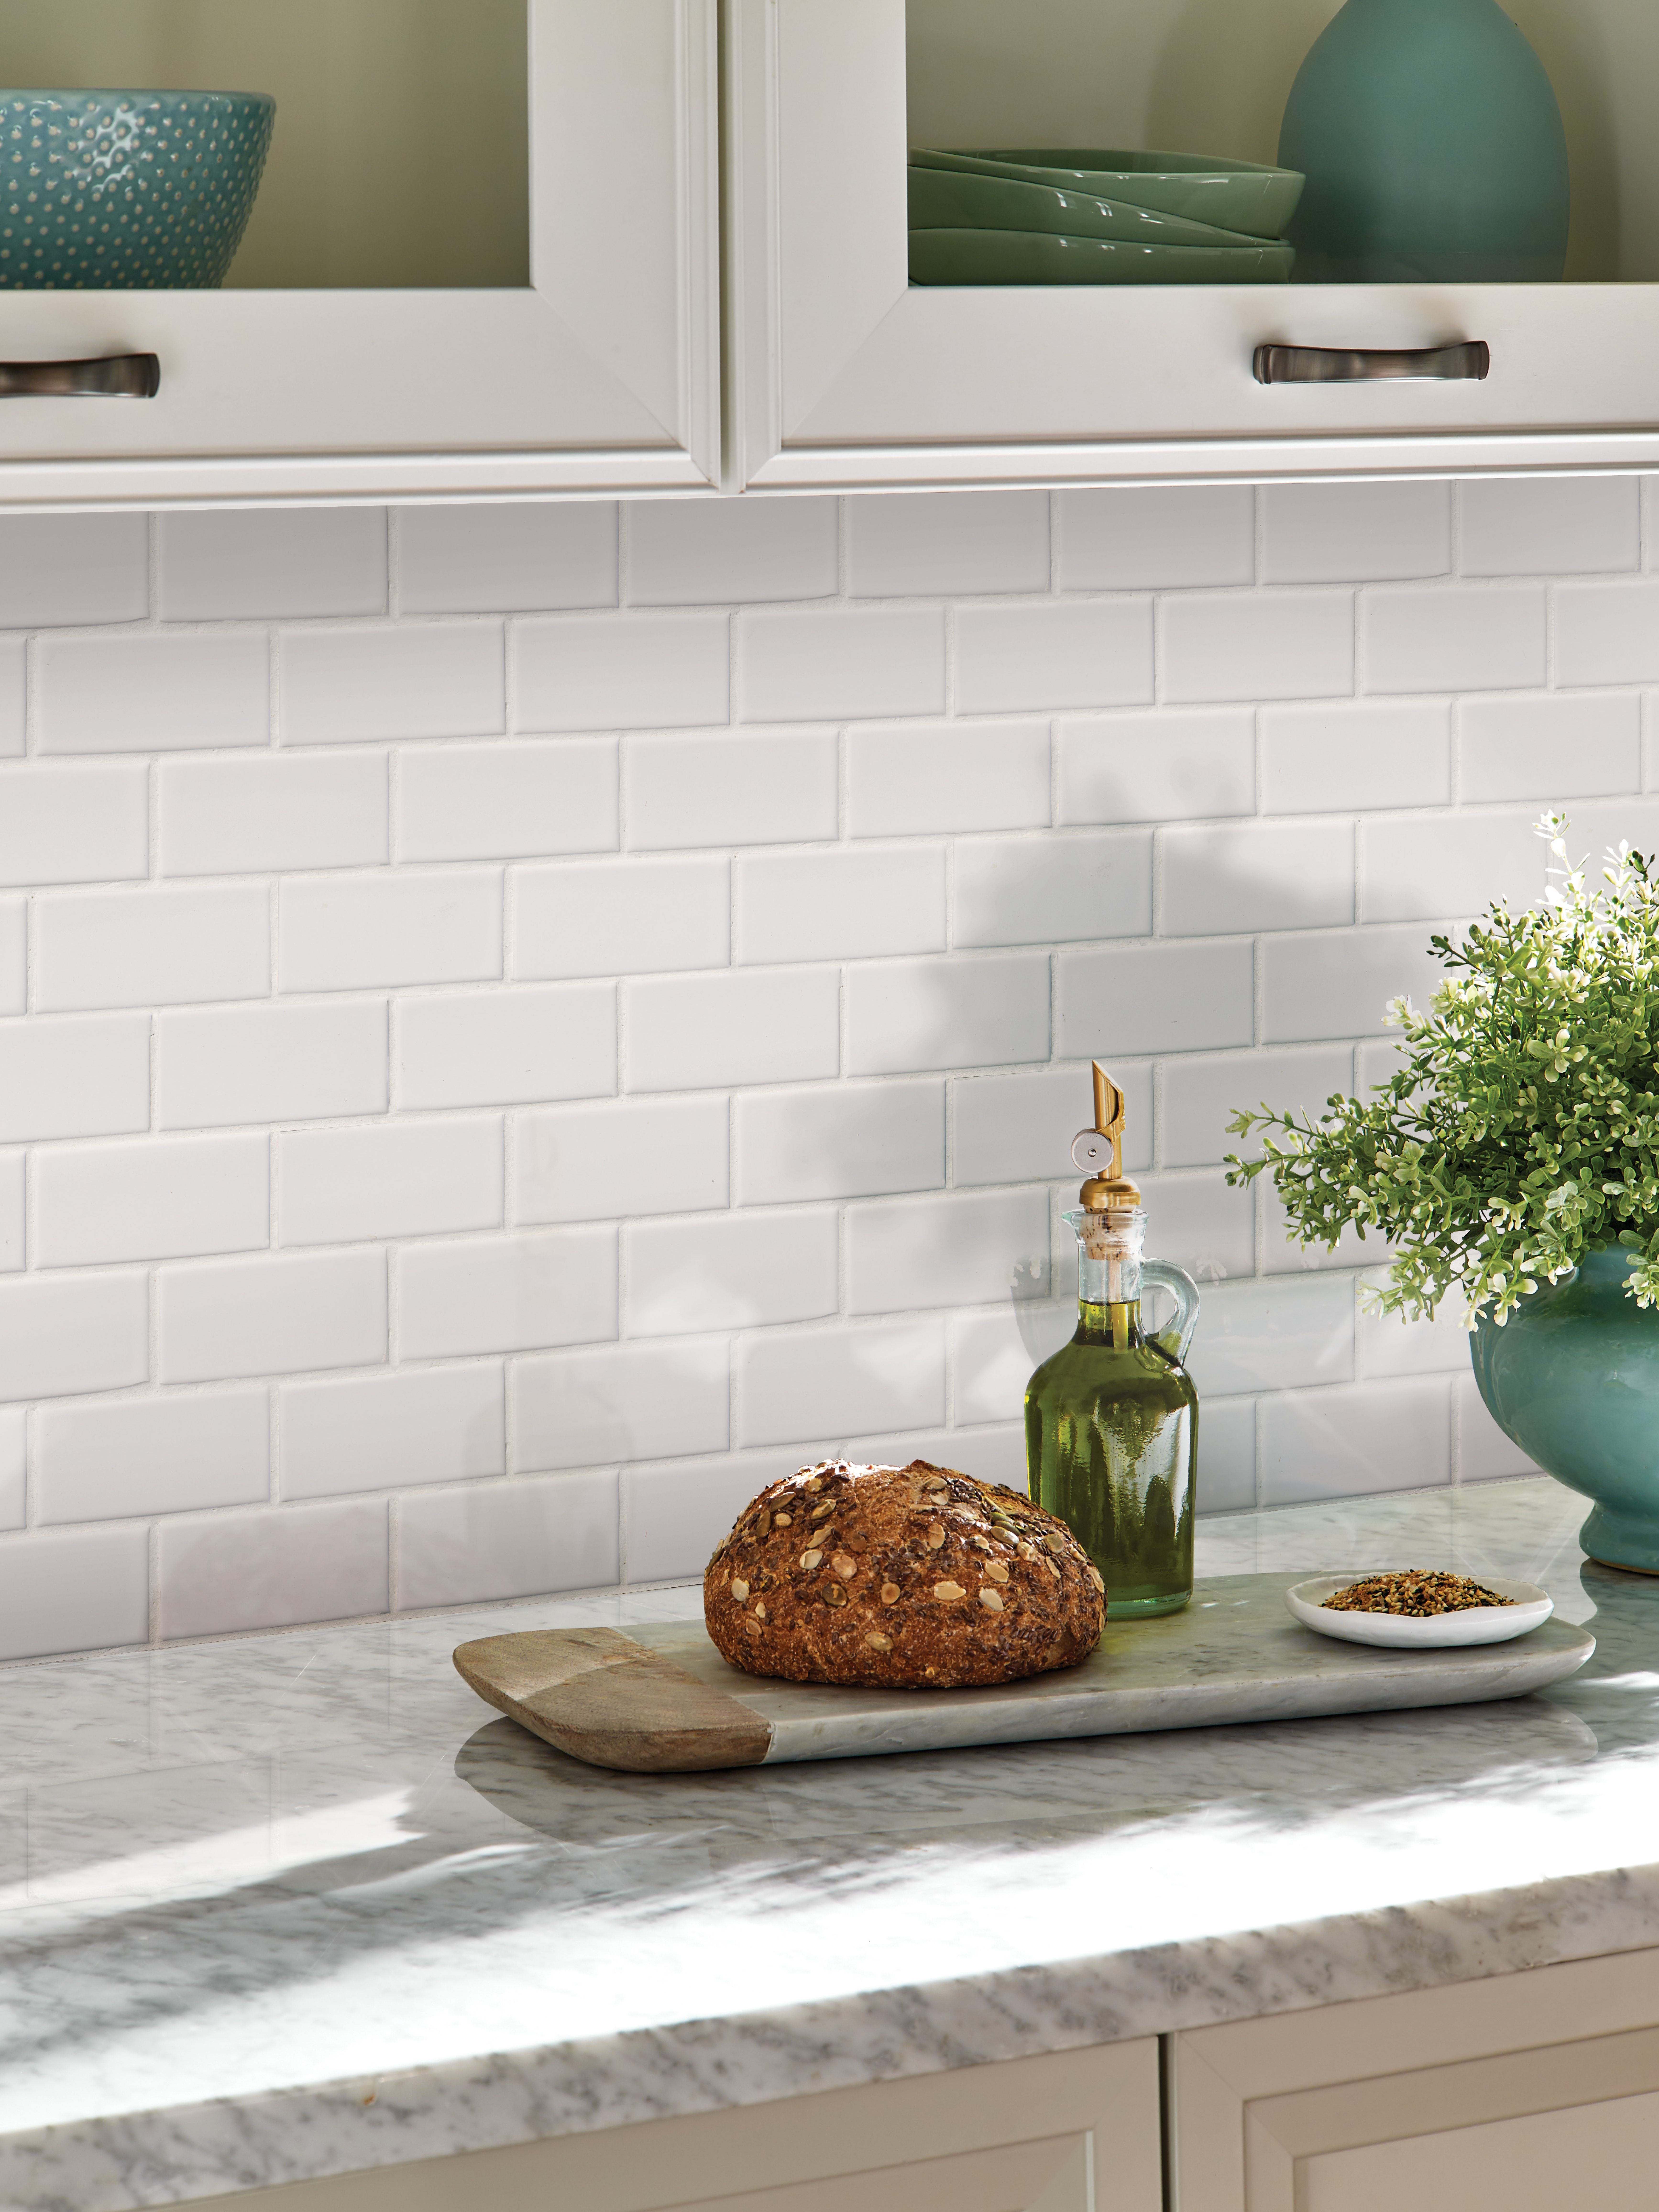 If You Re Looking For The Classic White Subway Tile Look Then Look No Further Than Frost Subway Tile The M Ceramic Mosaic Tile Mosaic Tiles Mosaic Wall Tiles